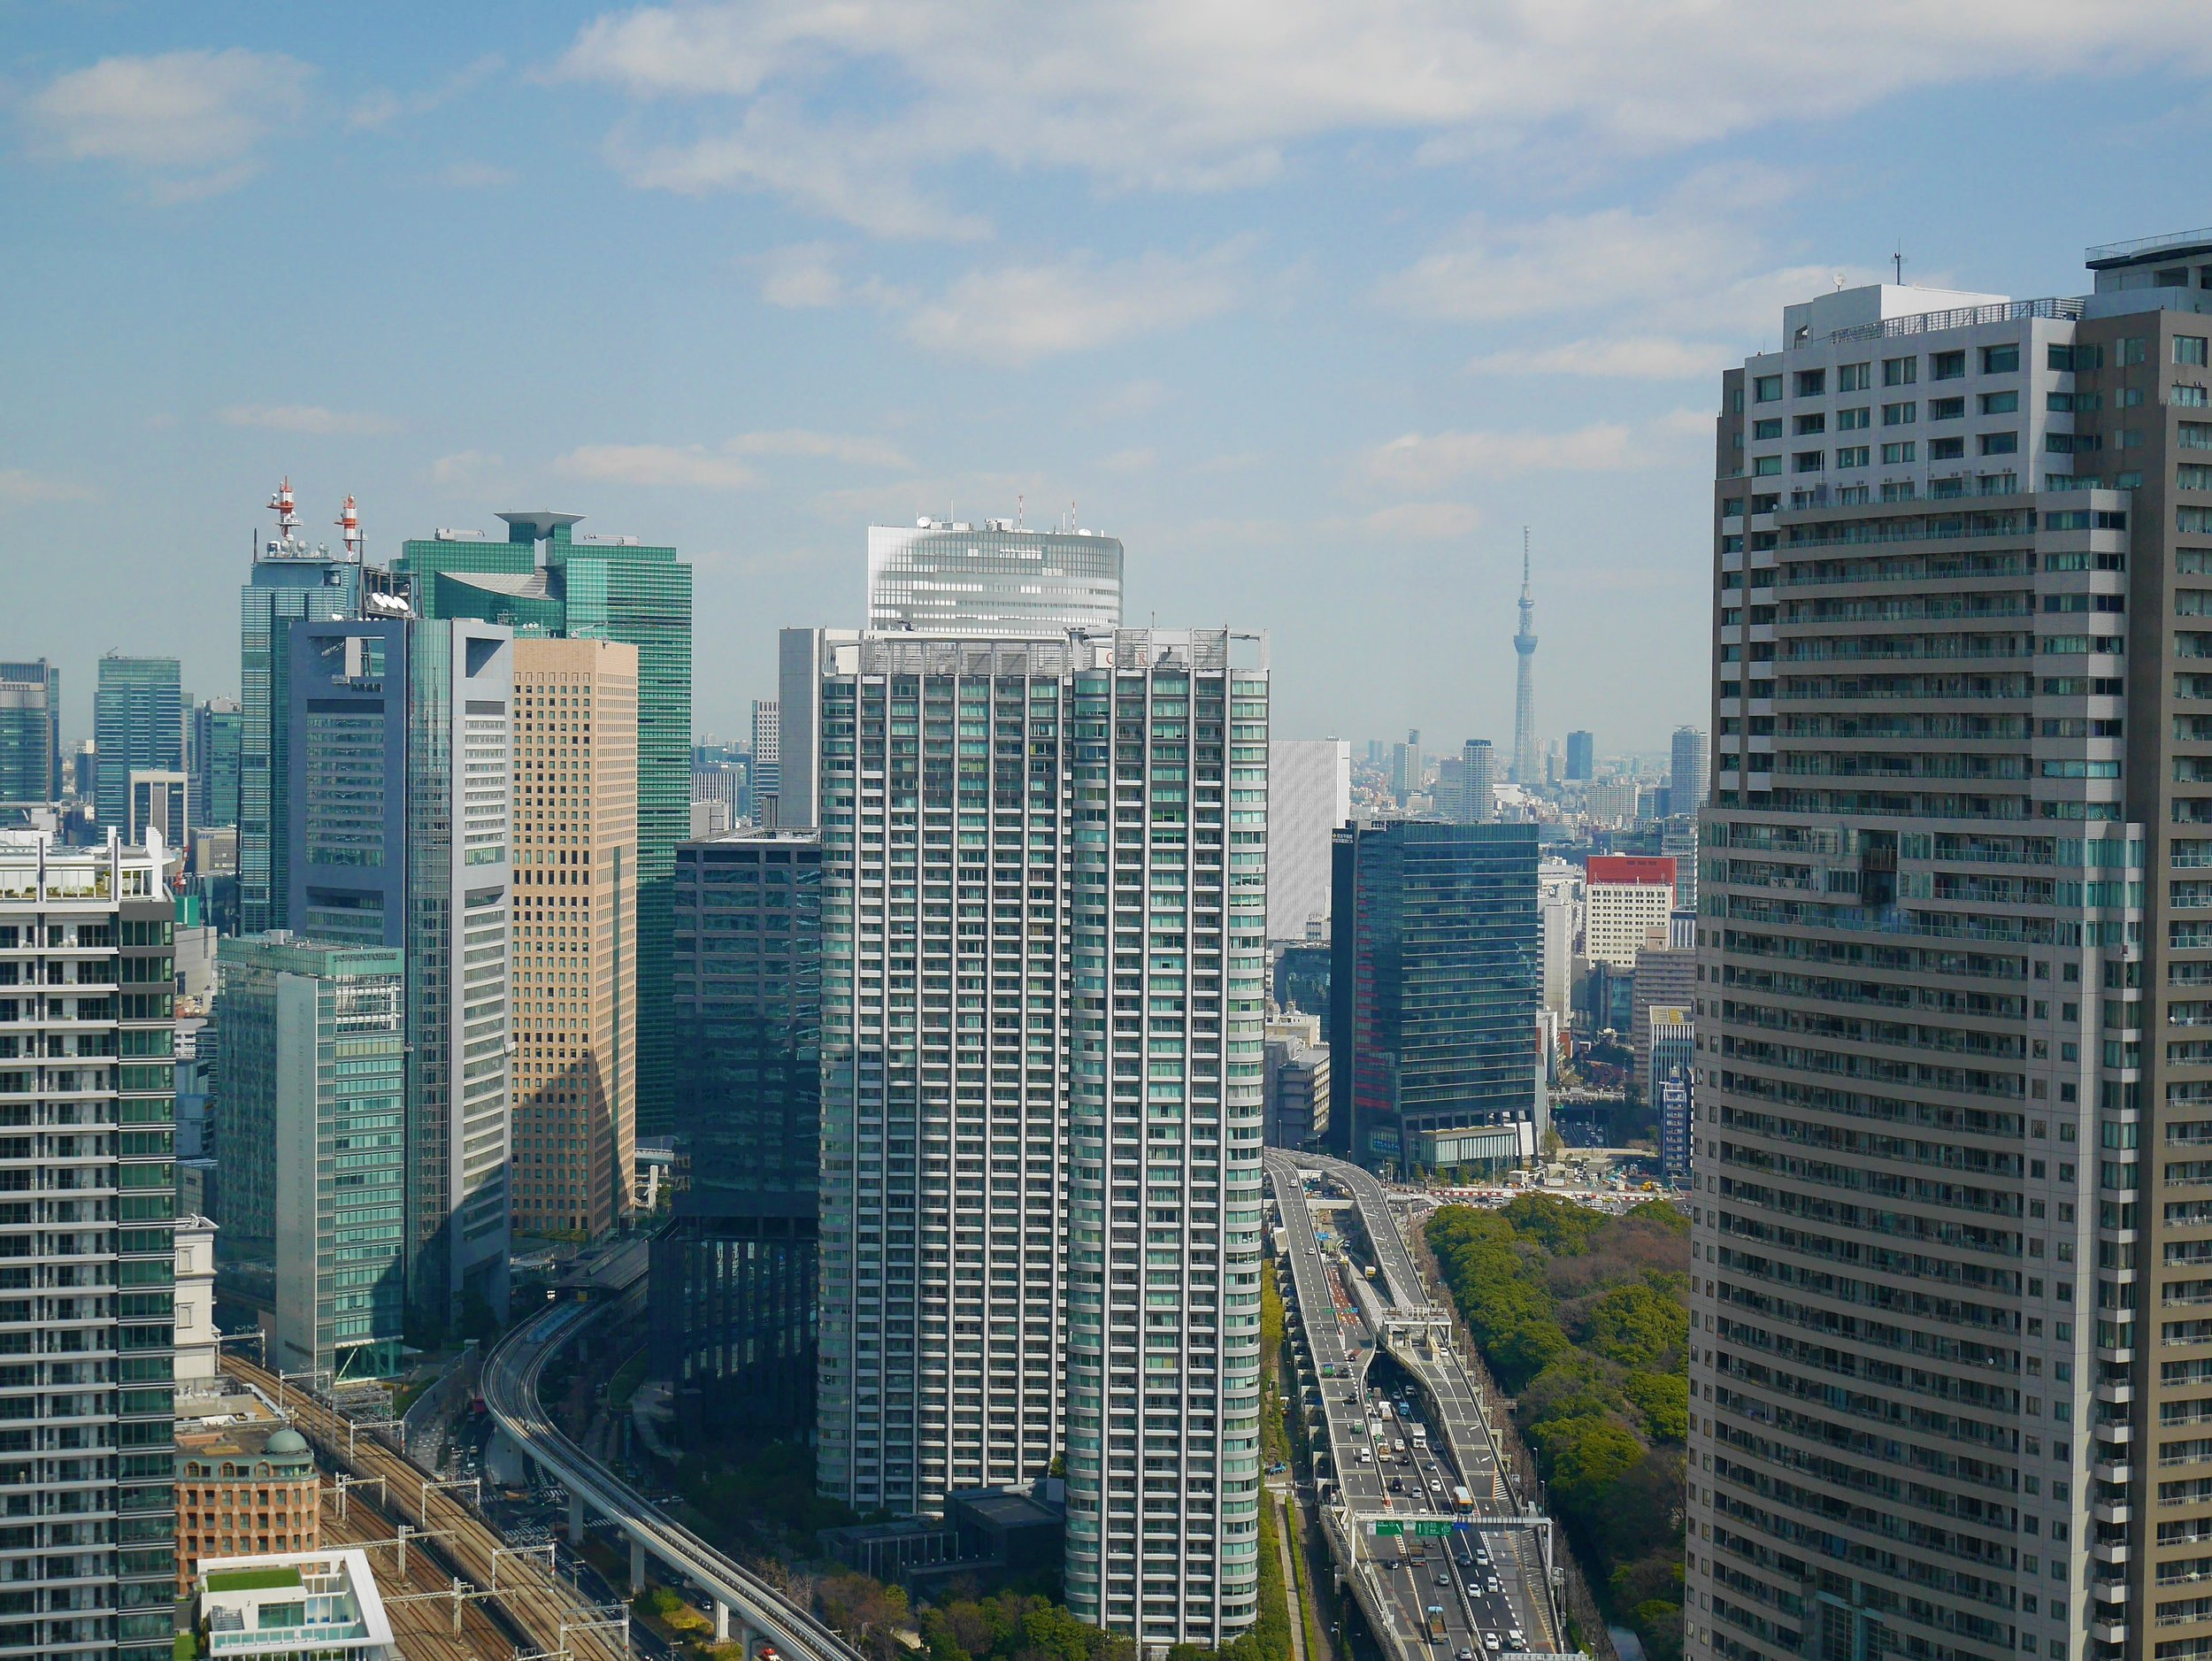 Tokyo's vast infrastructure network awaits an influx of visitors for the 2020 Olympic Games.